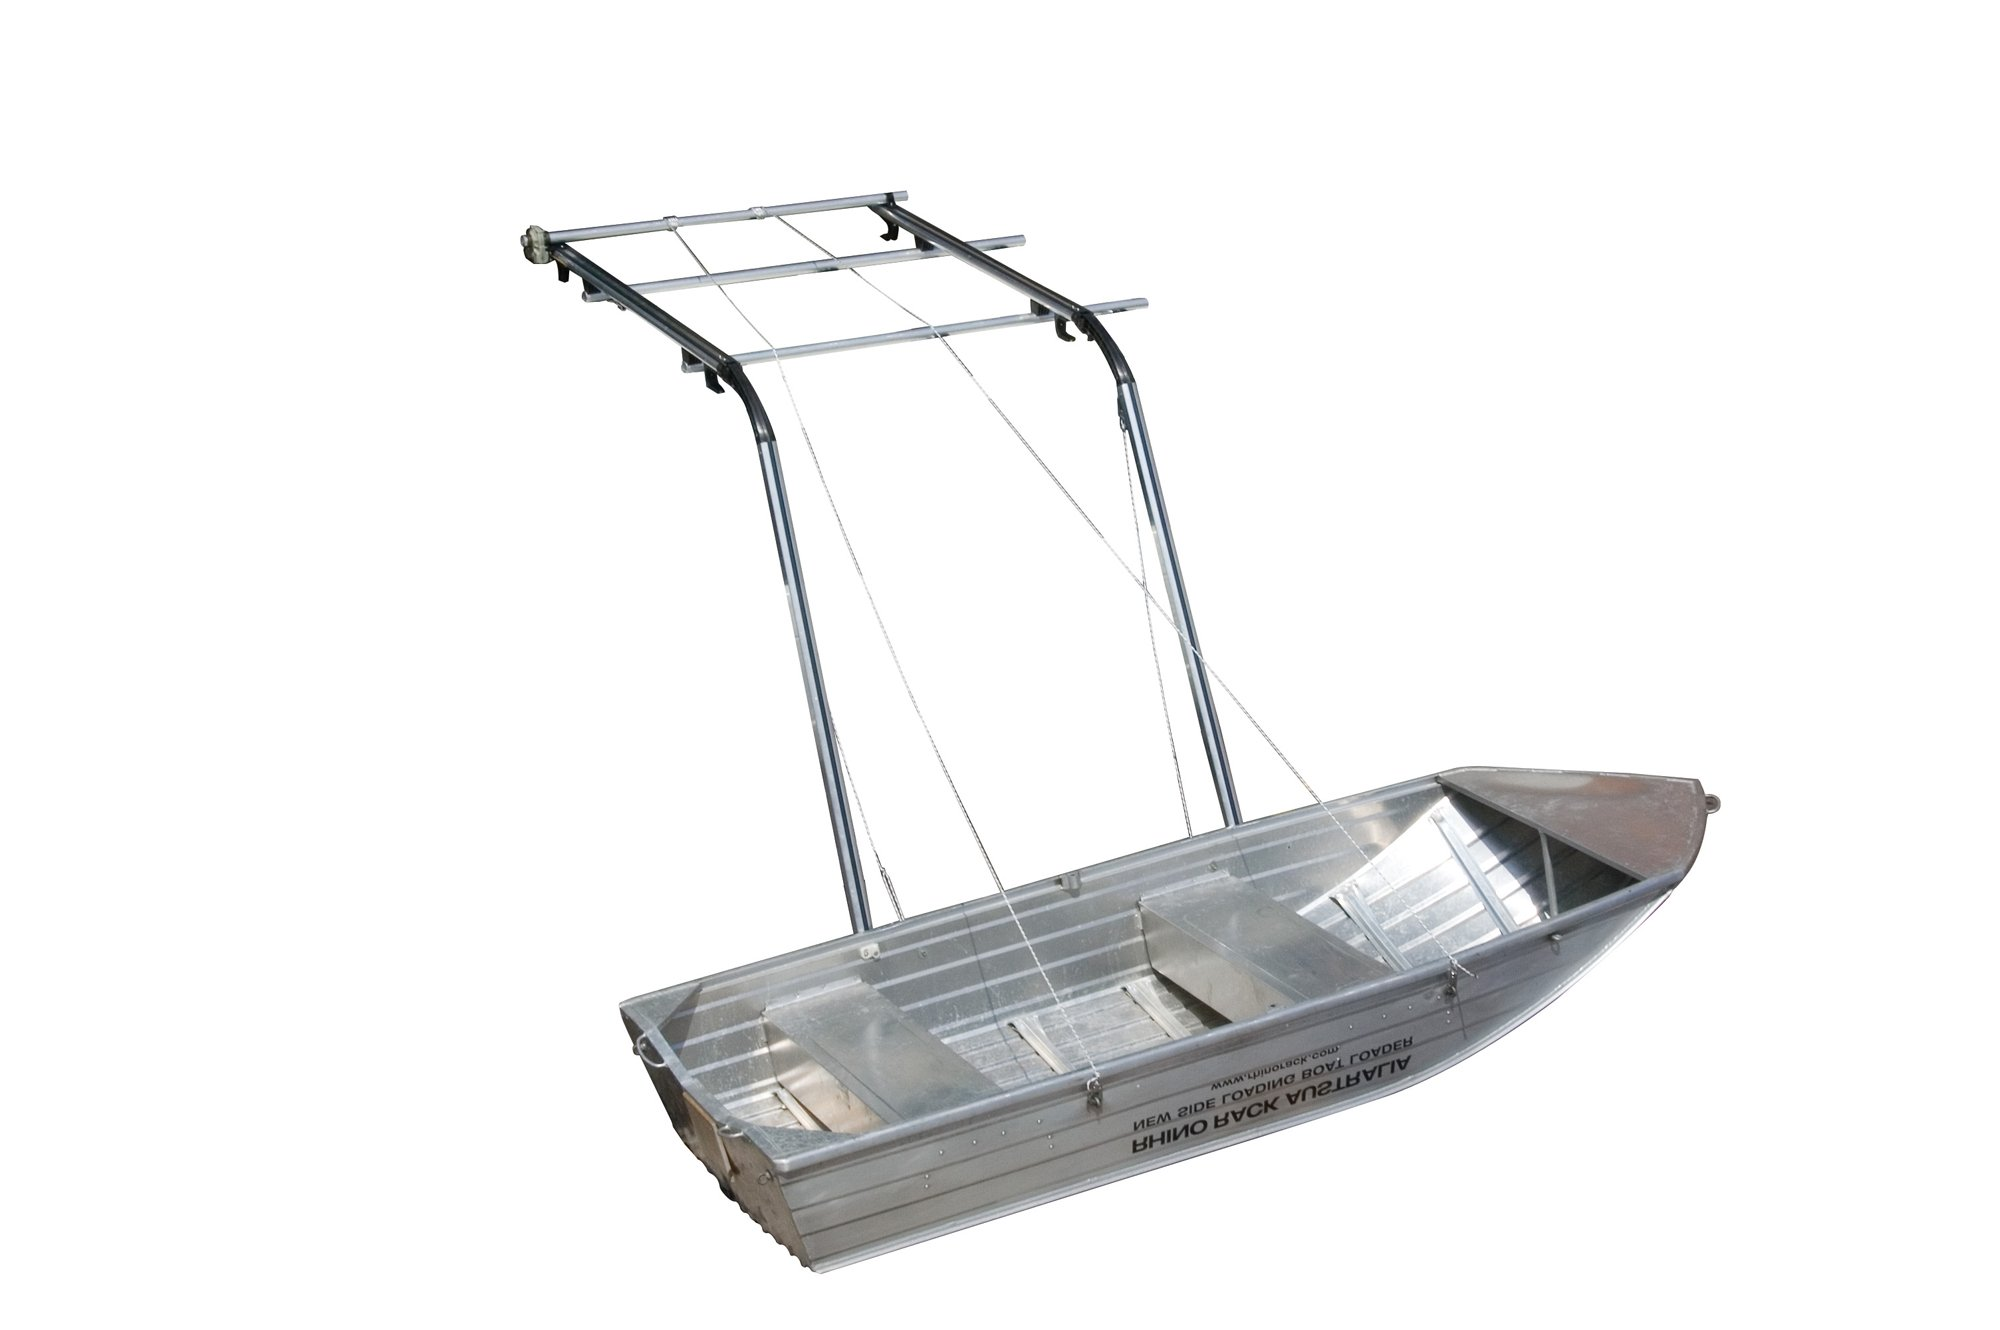 Rhino Rack Side Boat Loader (Fits Right Side of Vehicle) by Rhino Rack